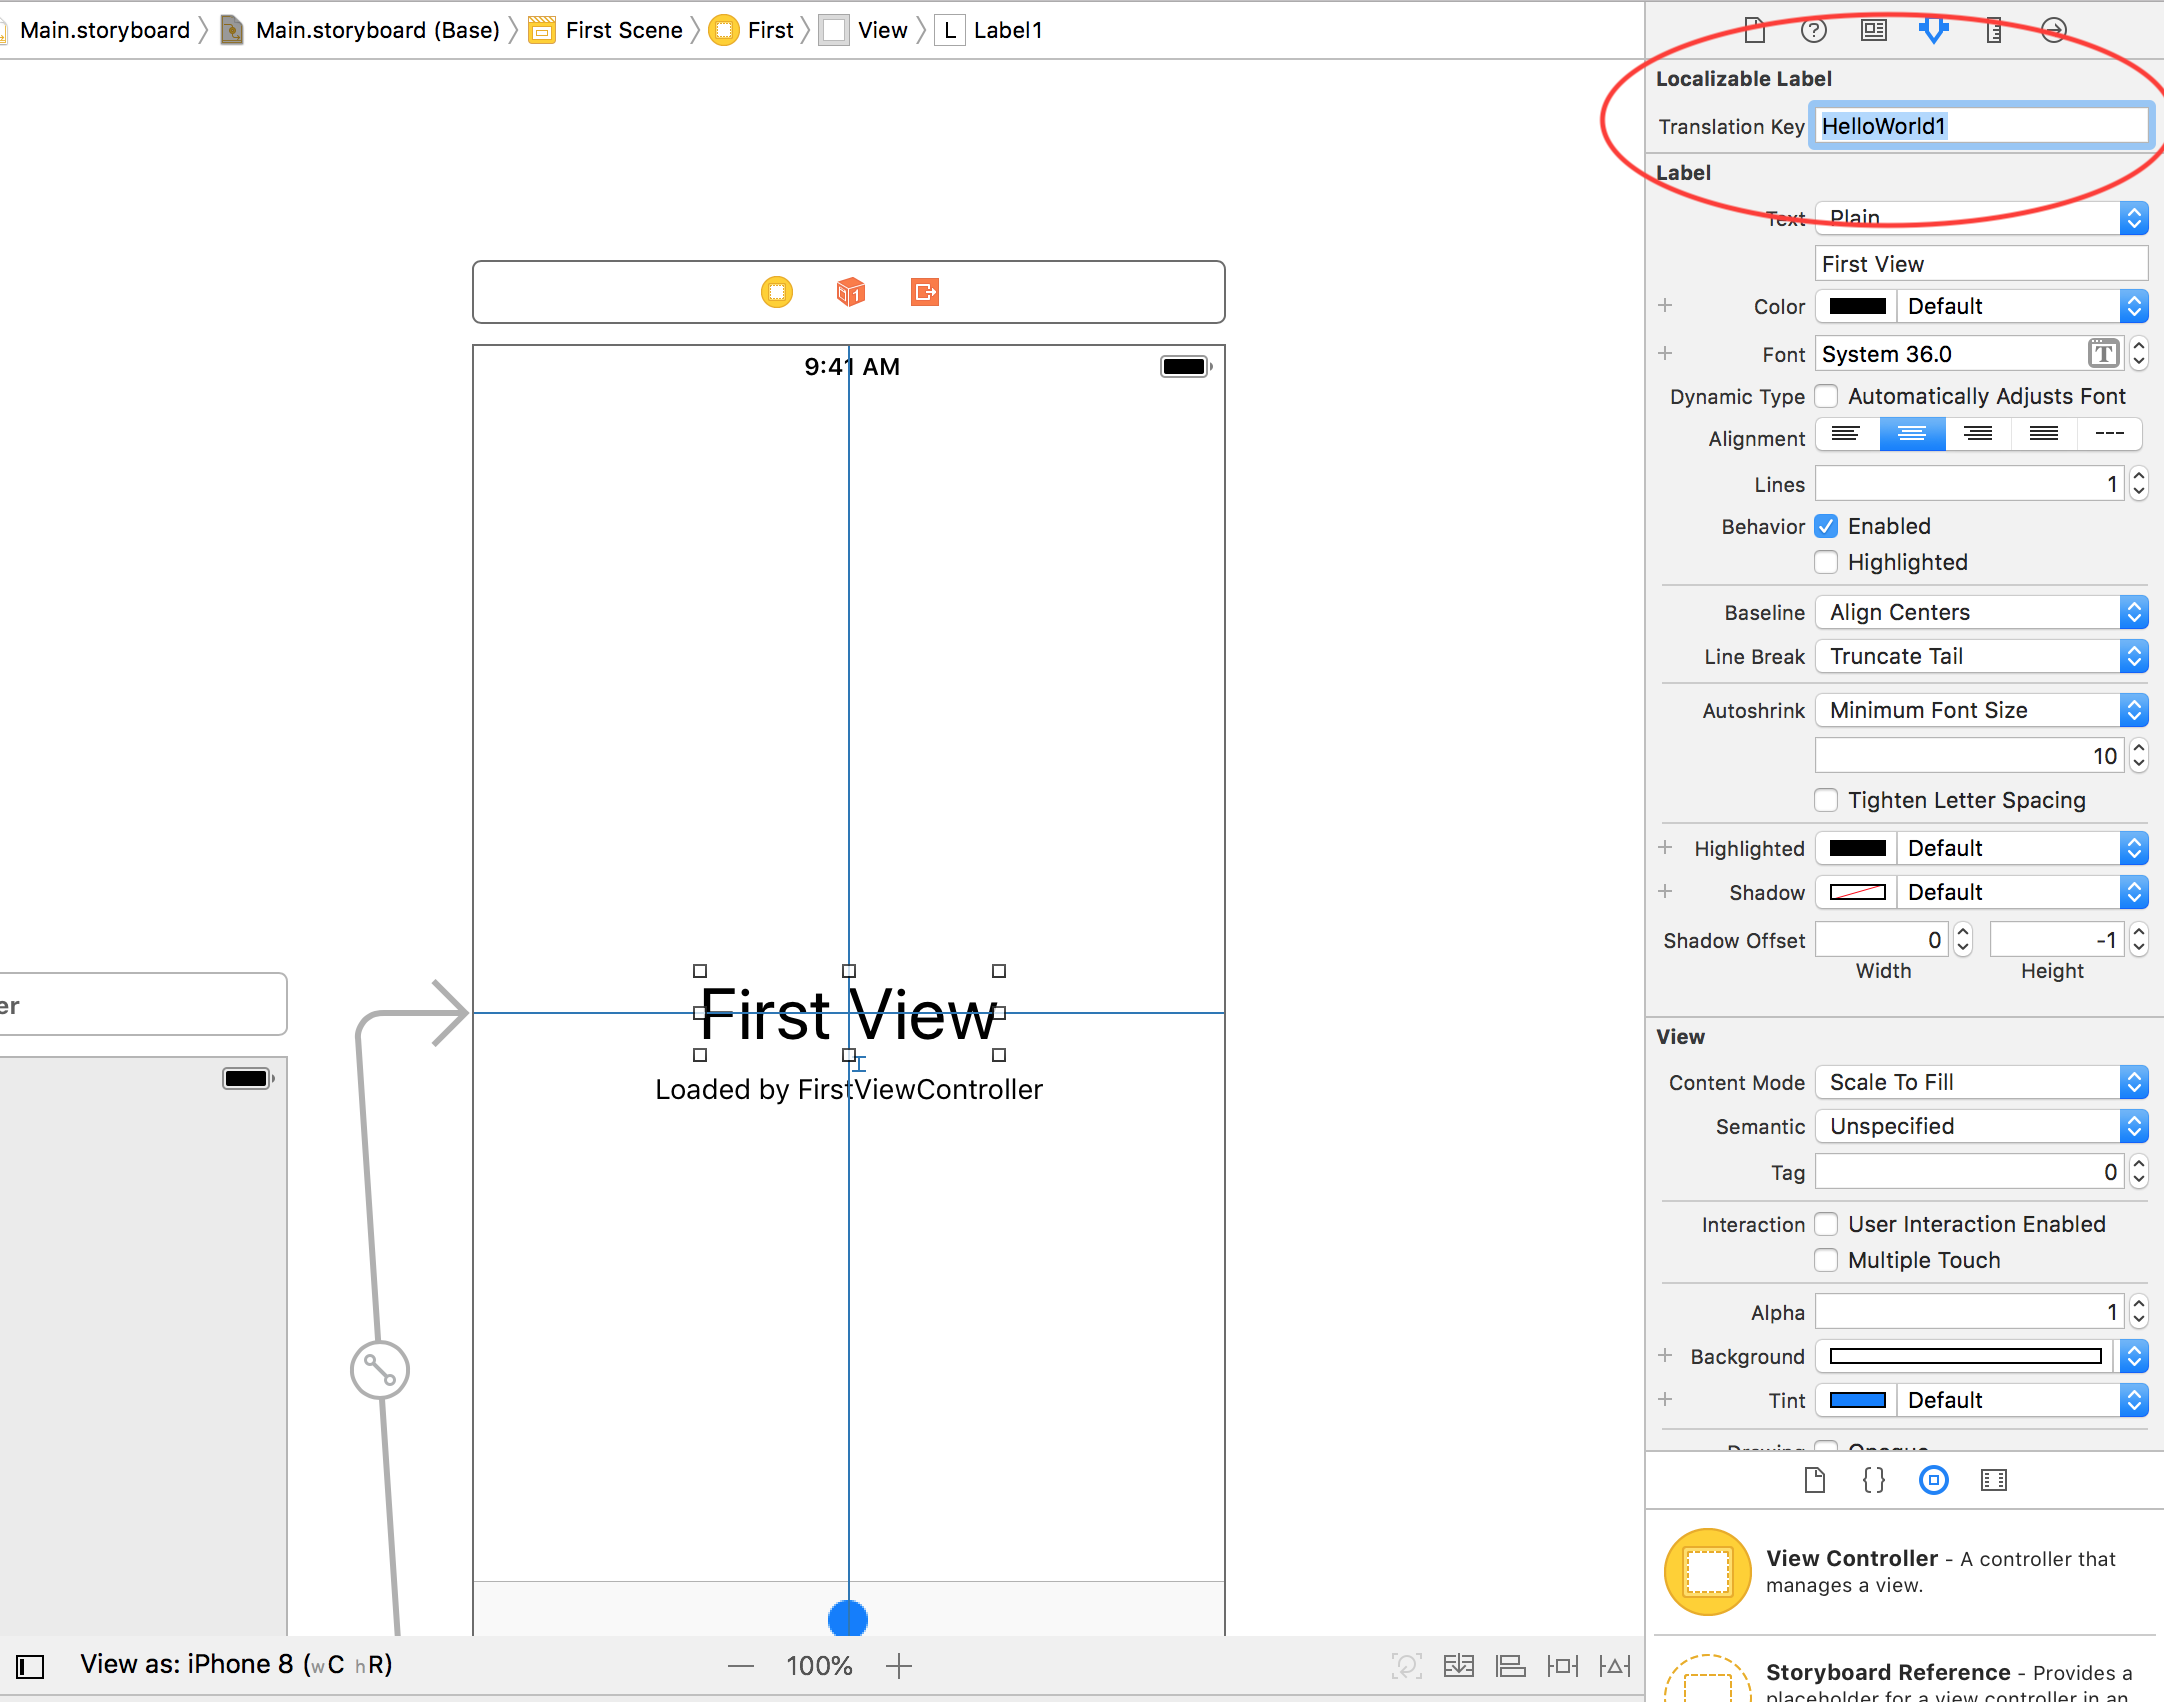 How to set translation key from Storyboard on iOS